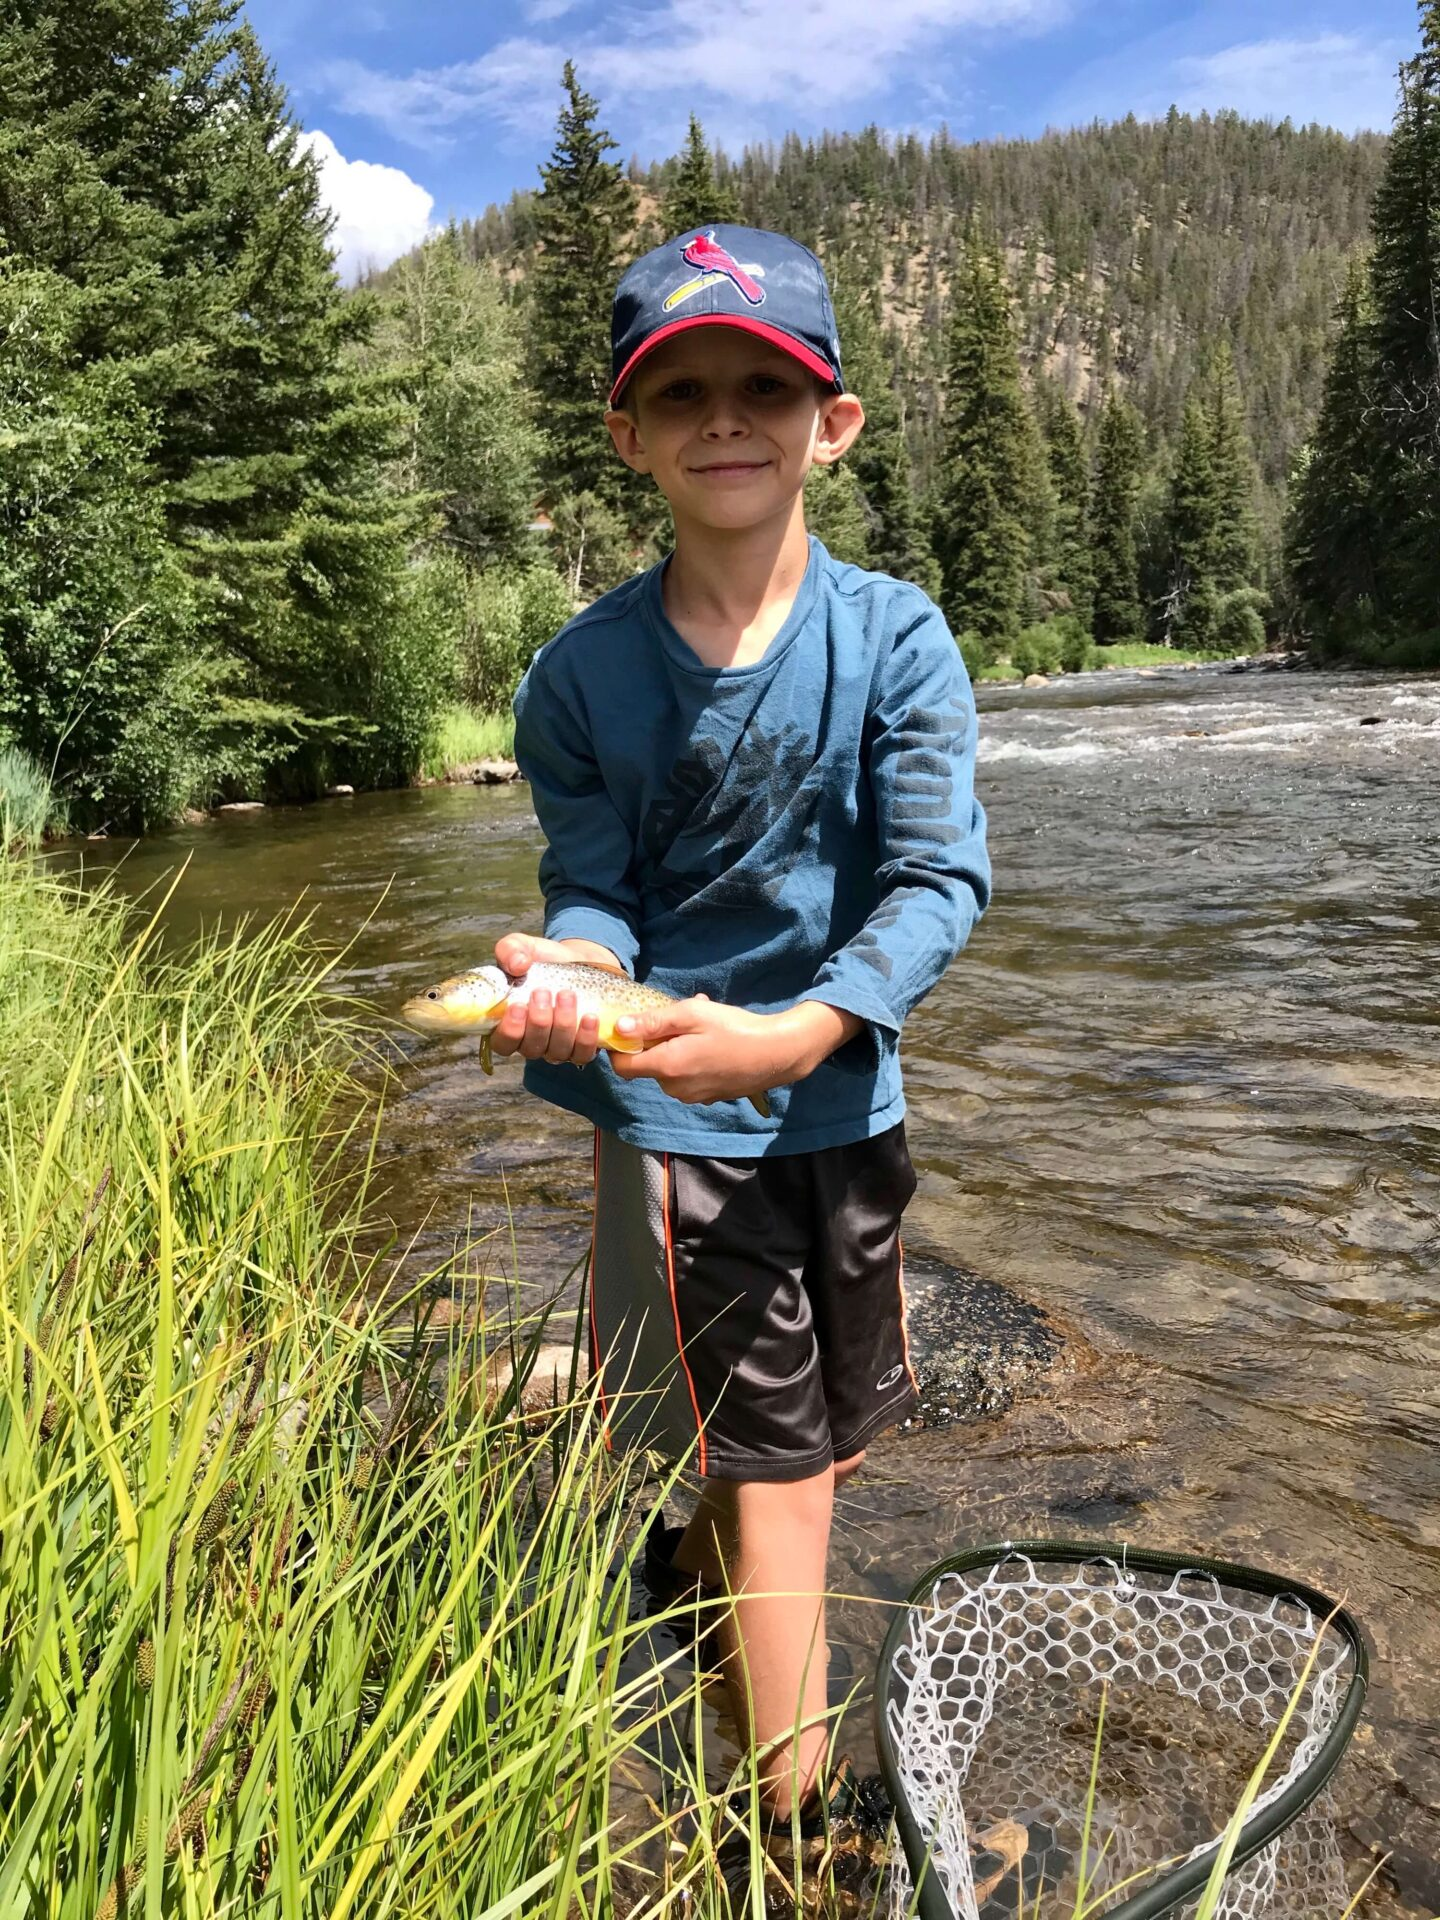 Wilder on the Taylor Fishing